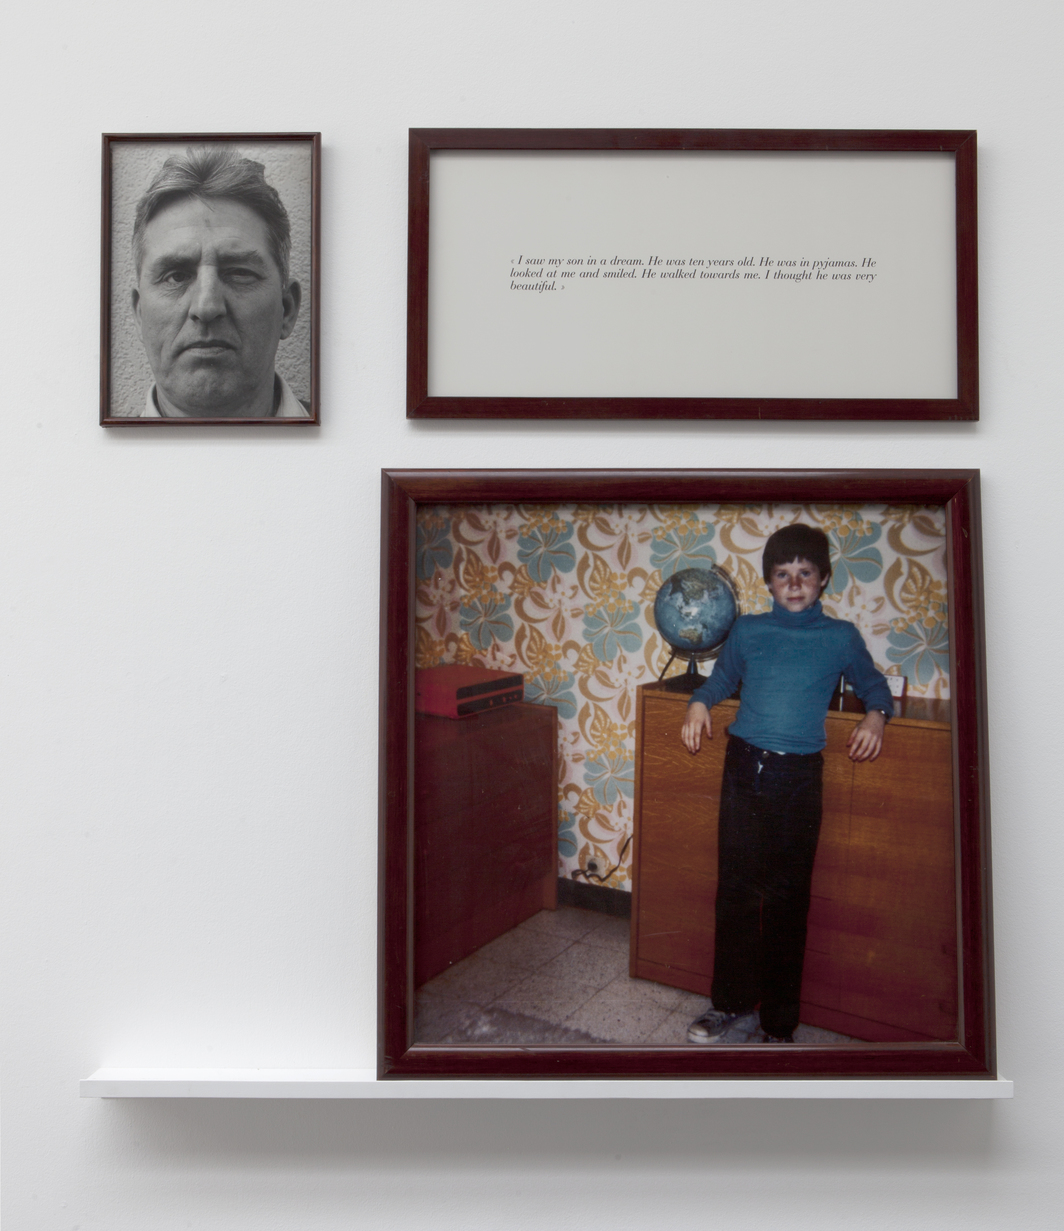 Sophie Calle, The Blind. My son, 1986, framed text, framed black-and-white photograph, framed color photograph, one shelf, dimensions variable.